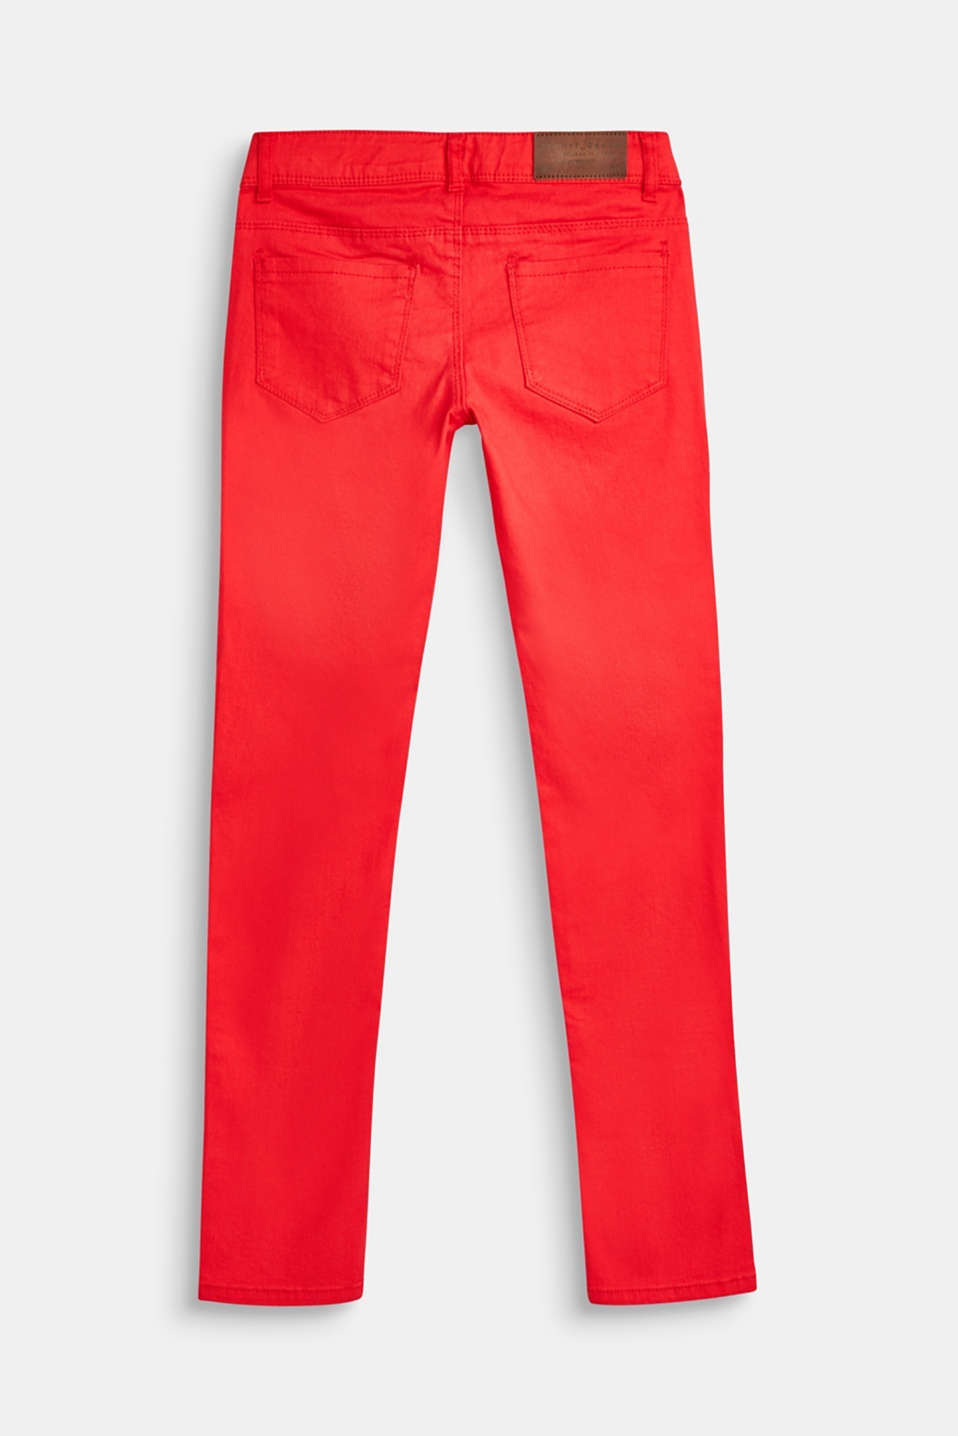 Coloured stretch jeans with a coin pocket